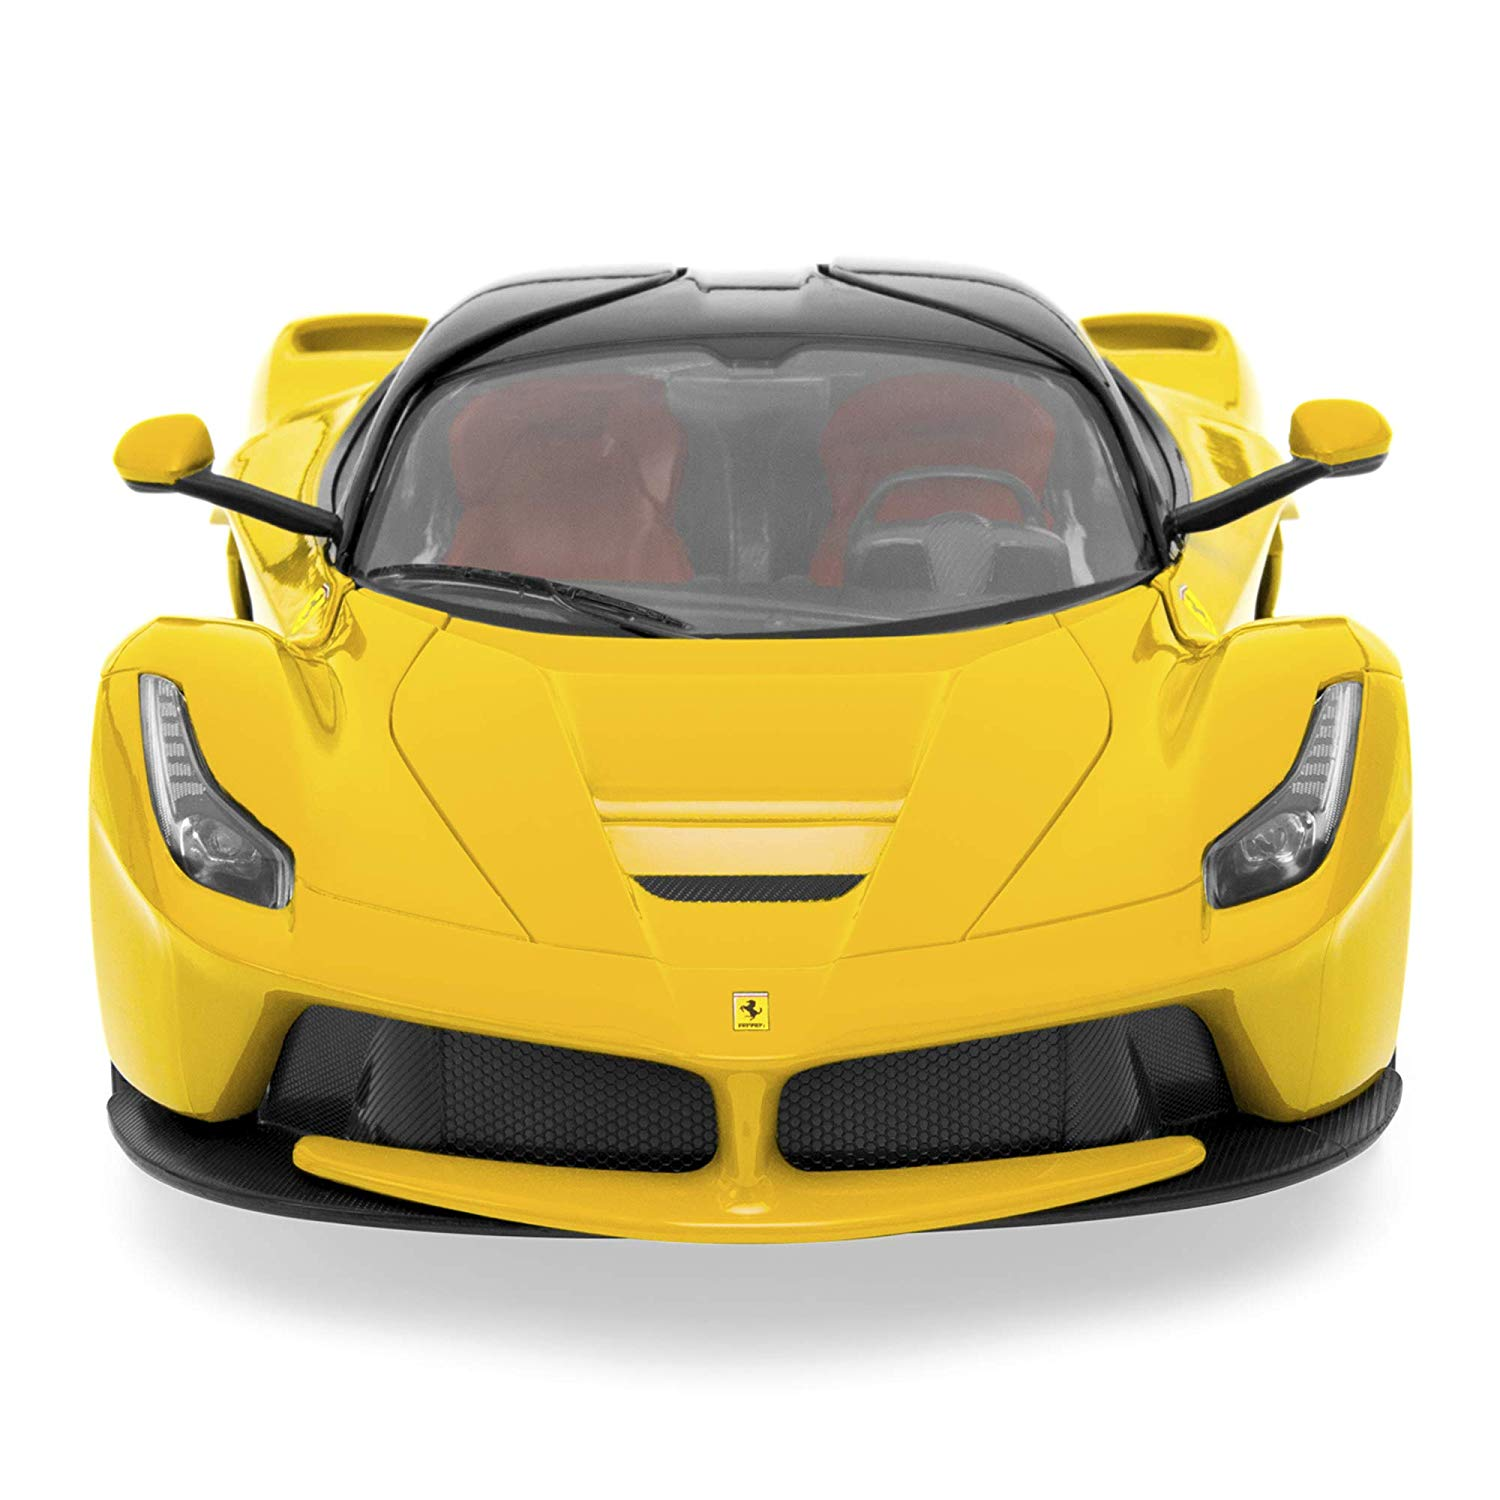 27 MHz 1/14 Scale Kids Licensed Ferrari Model Remote Control Play Toy Car w/ Functioning Headlights, Taillights, Doors, 5.1 MPH Max Speed